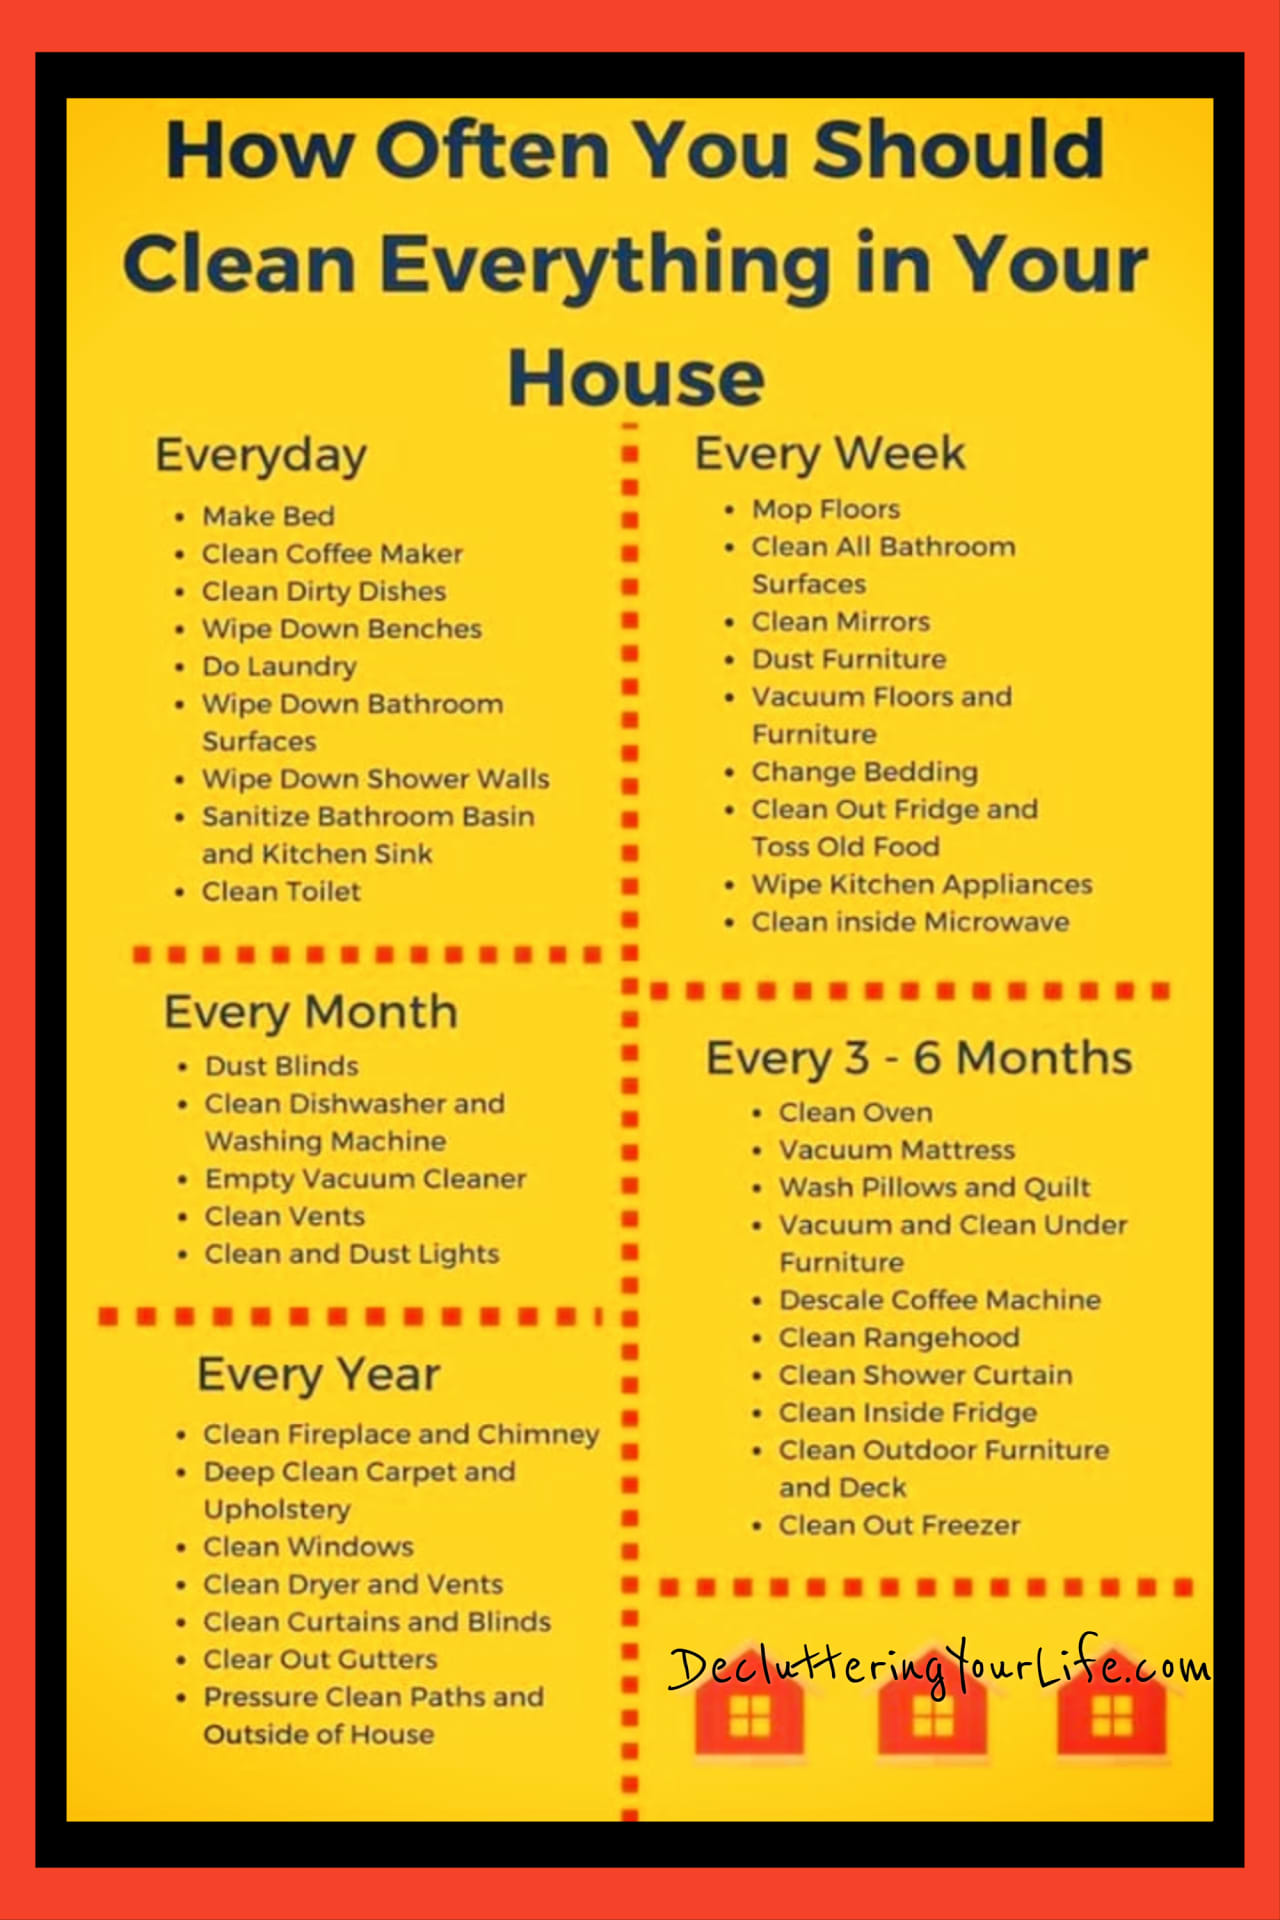 Home maintenance cleaning checklist - how often to clean things in your home.  Printable checklist and tips for when to clean everything in your house.  Daily, weekly and monthly cleaning schedules too!